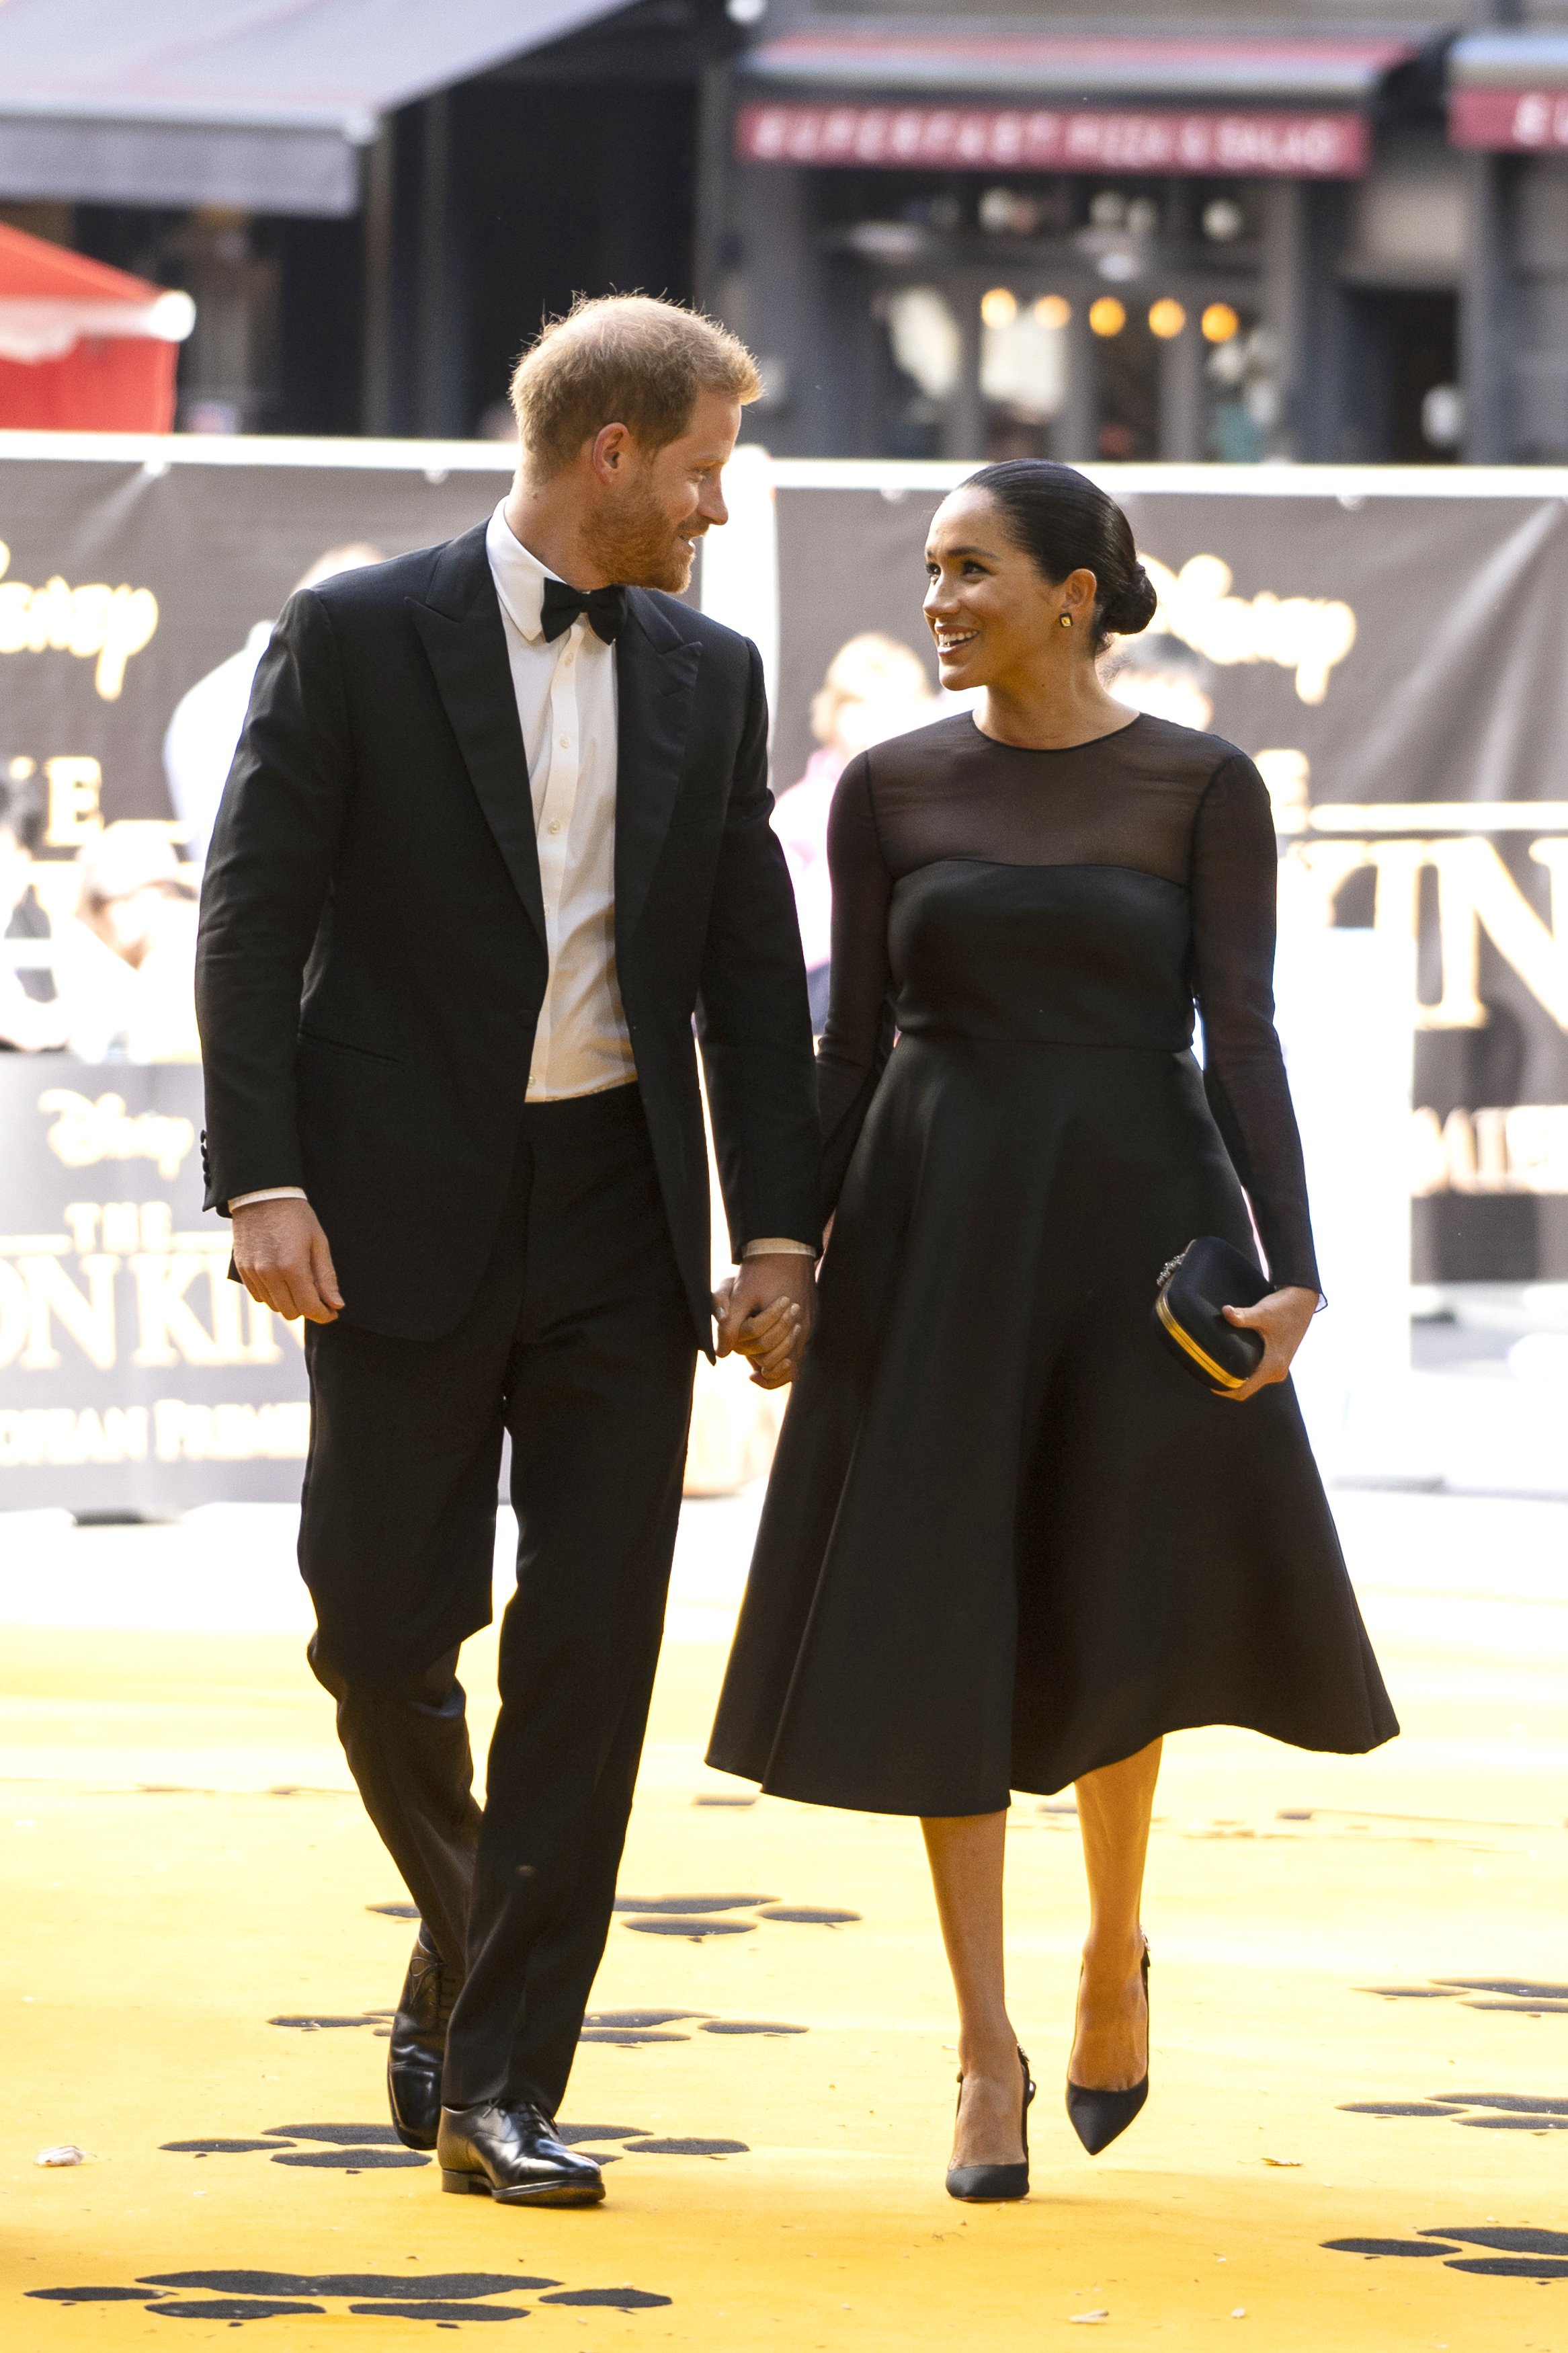 """Meghan Markle and Prince Harry attend the premiere of """"The Lion King"""" in the UK in July 2019 